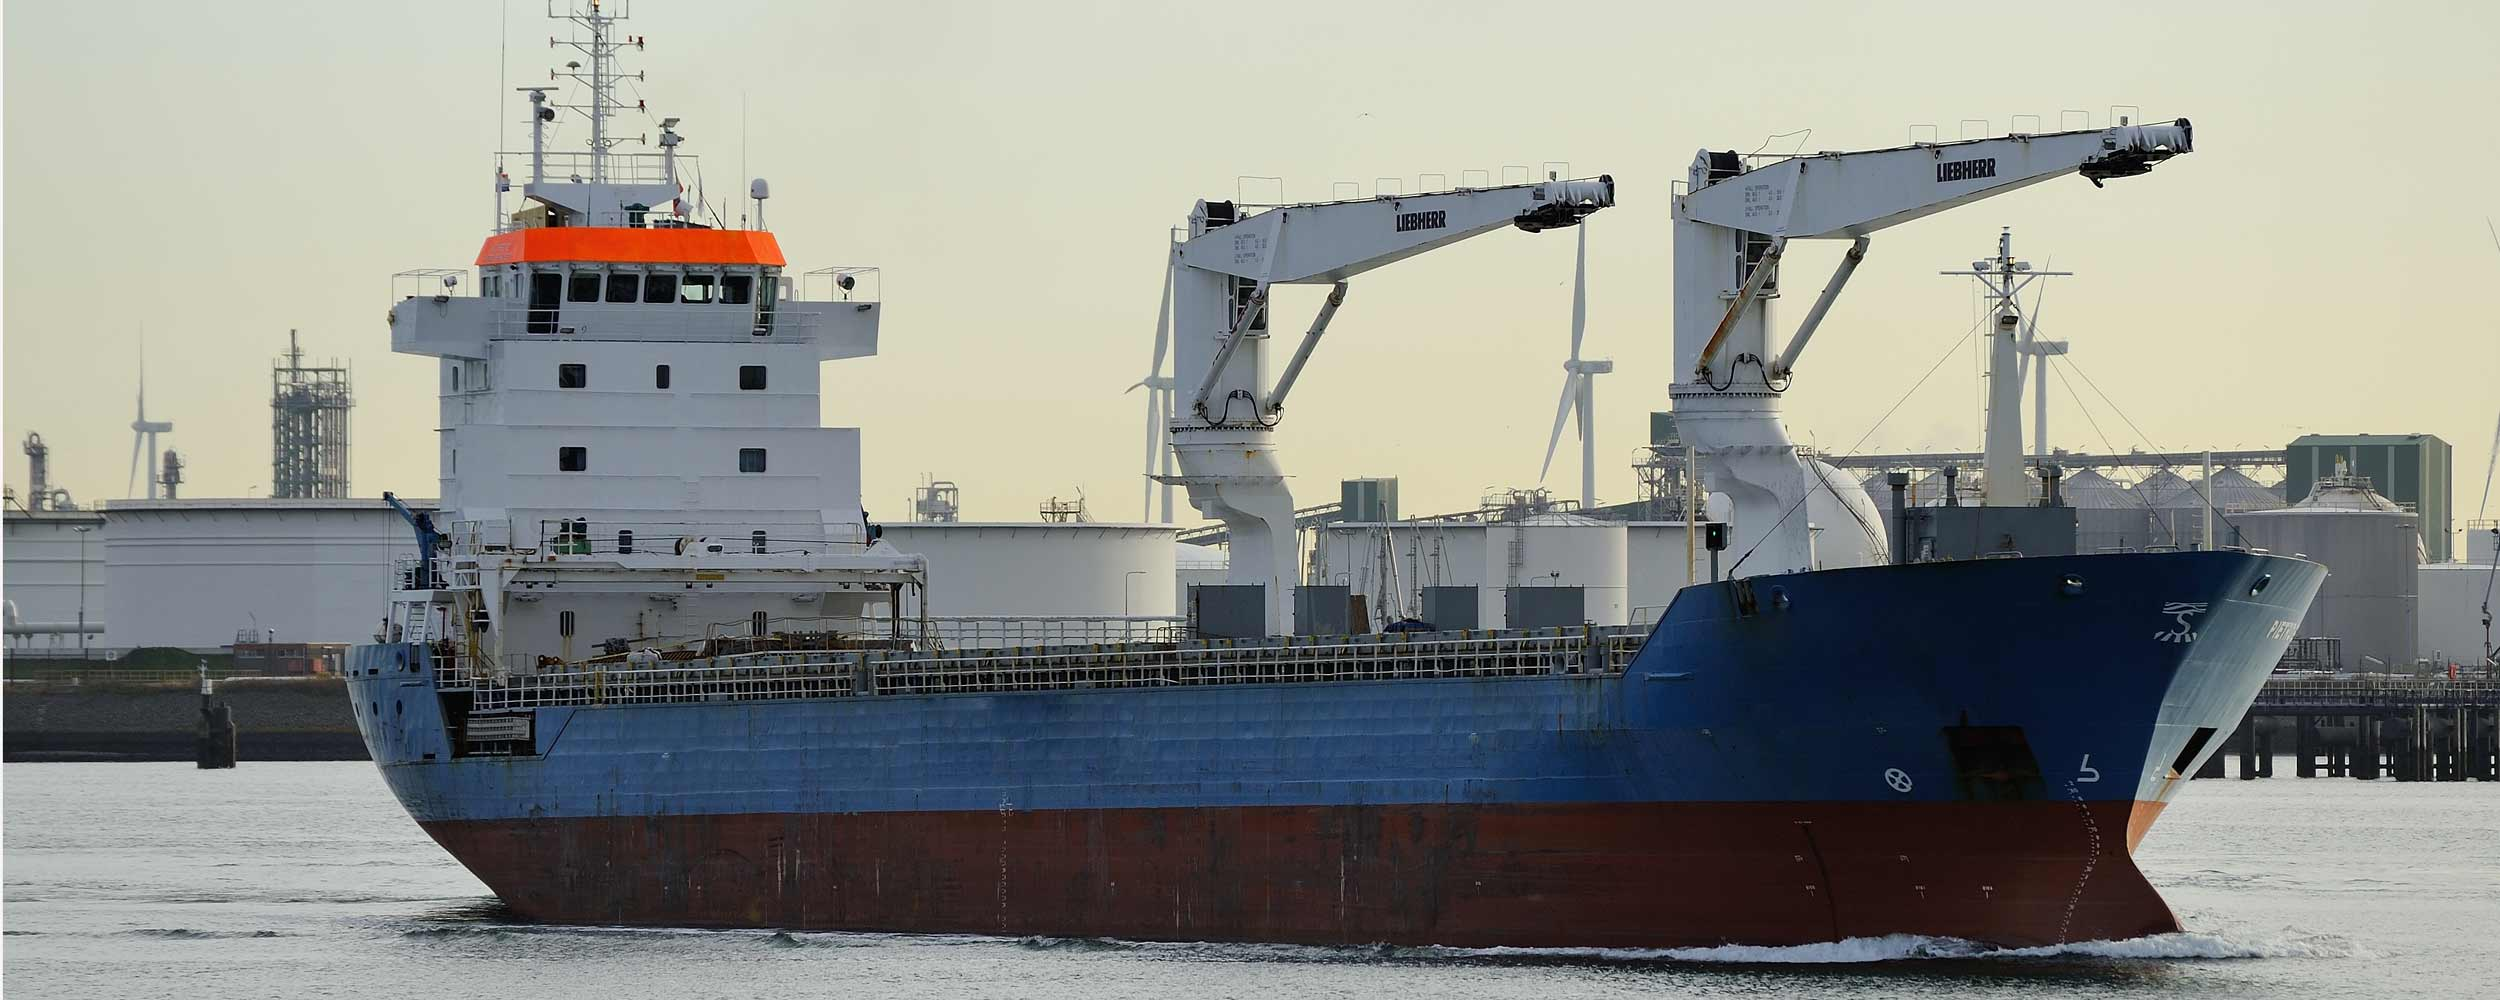 Meriaura fleet expands with a deck cargo vessel and two